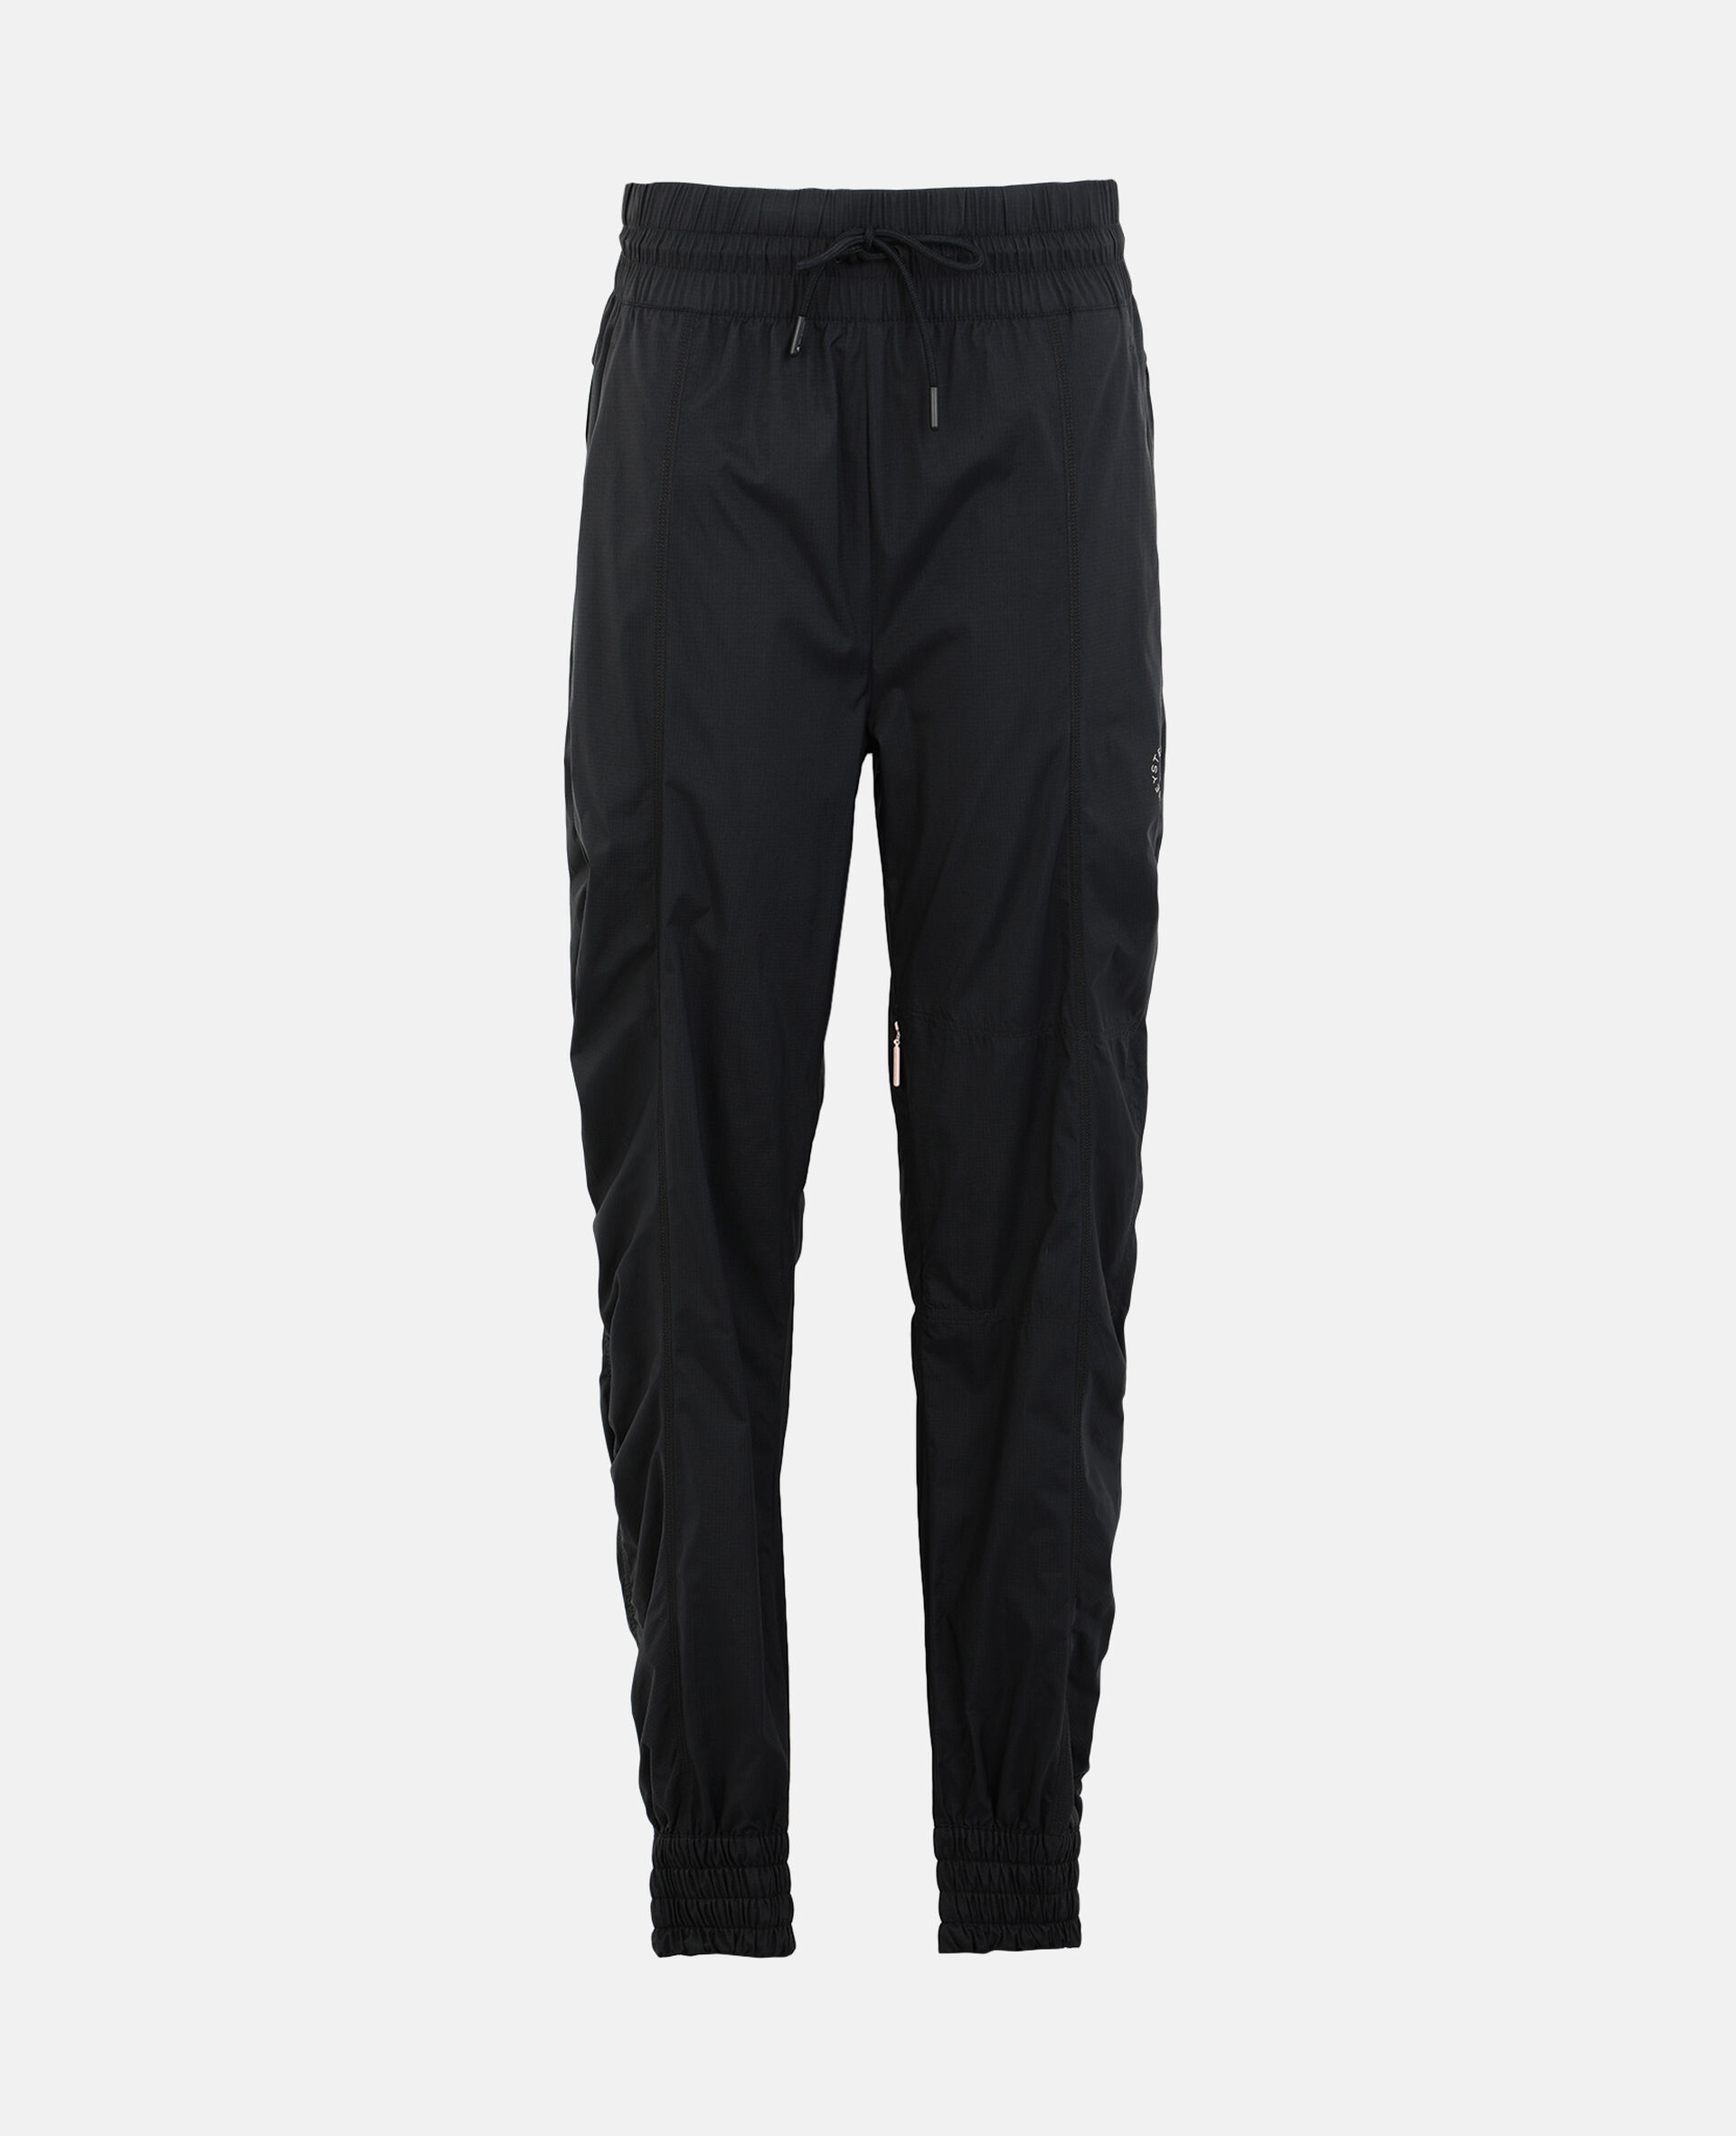 Black Woven Training Trousers-Black-large image number 0